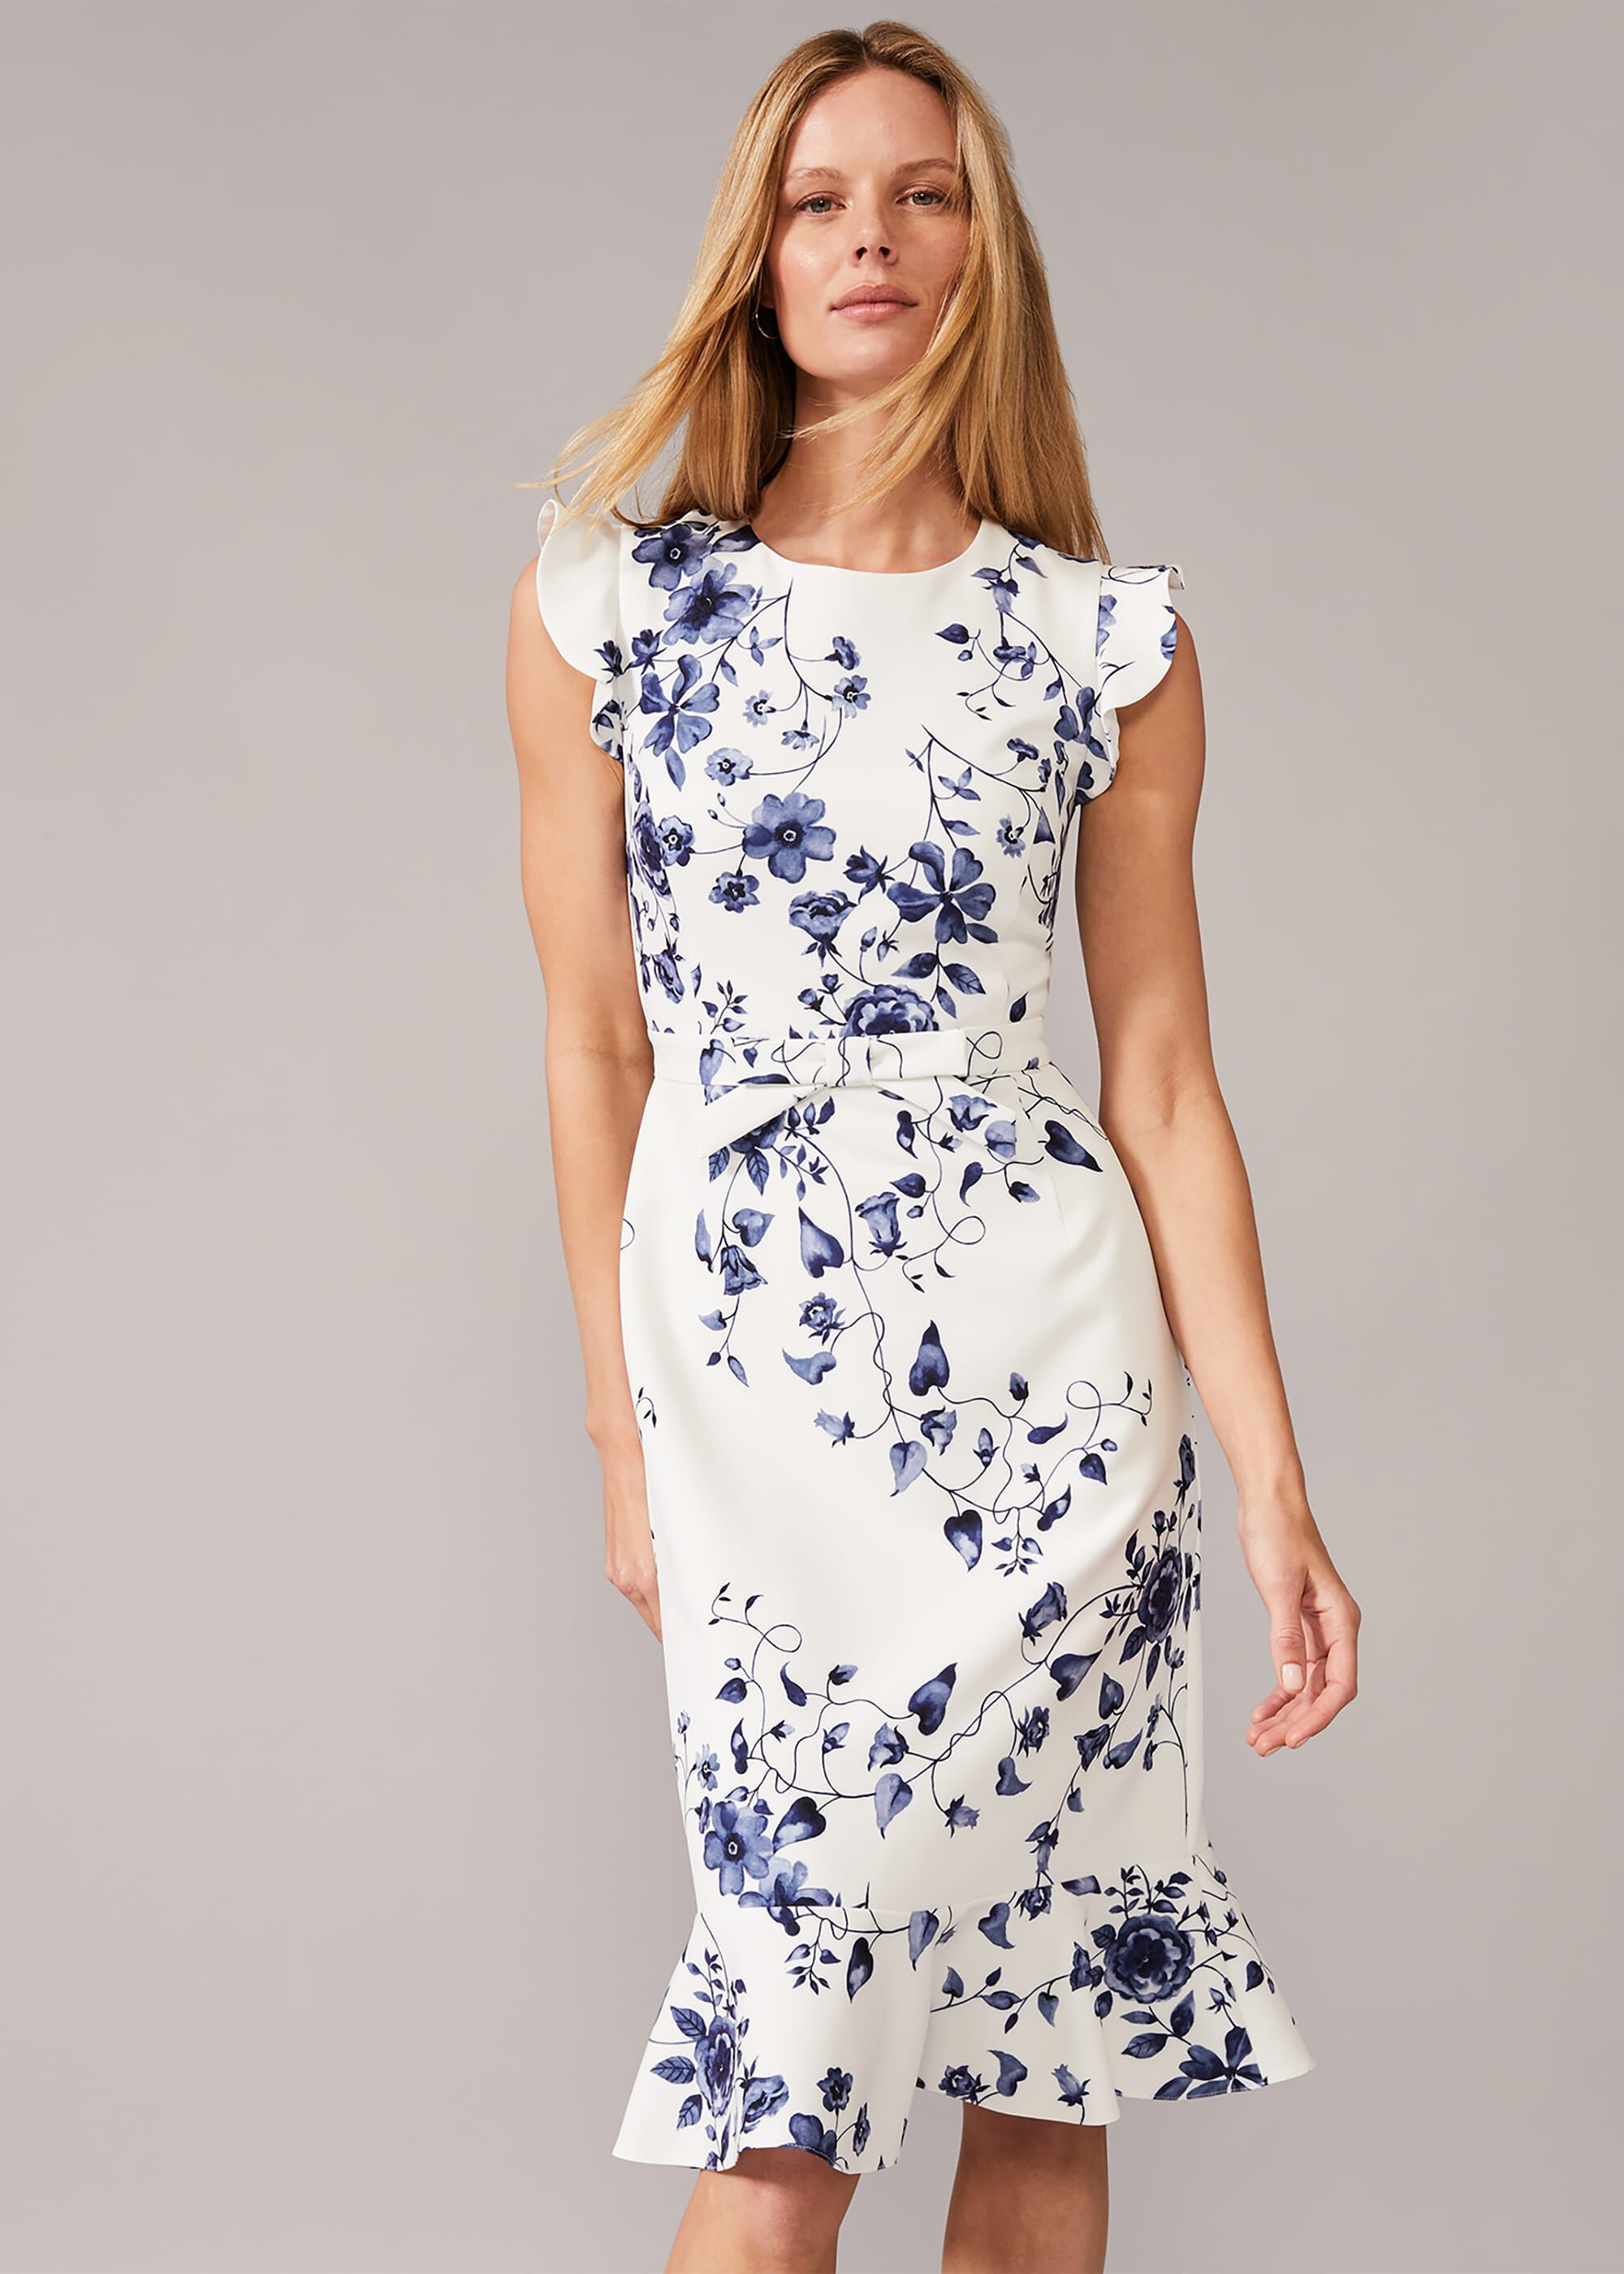 Phase Eight Tori Floral Fitted Dress, Cream, Fitted, Occasion Dress